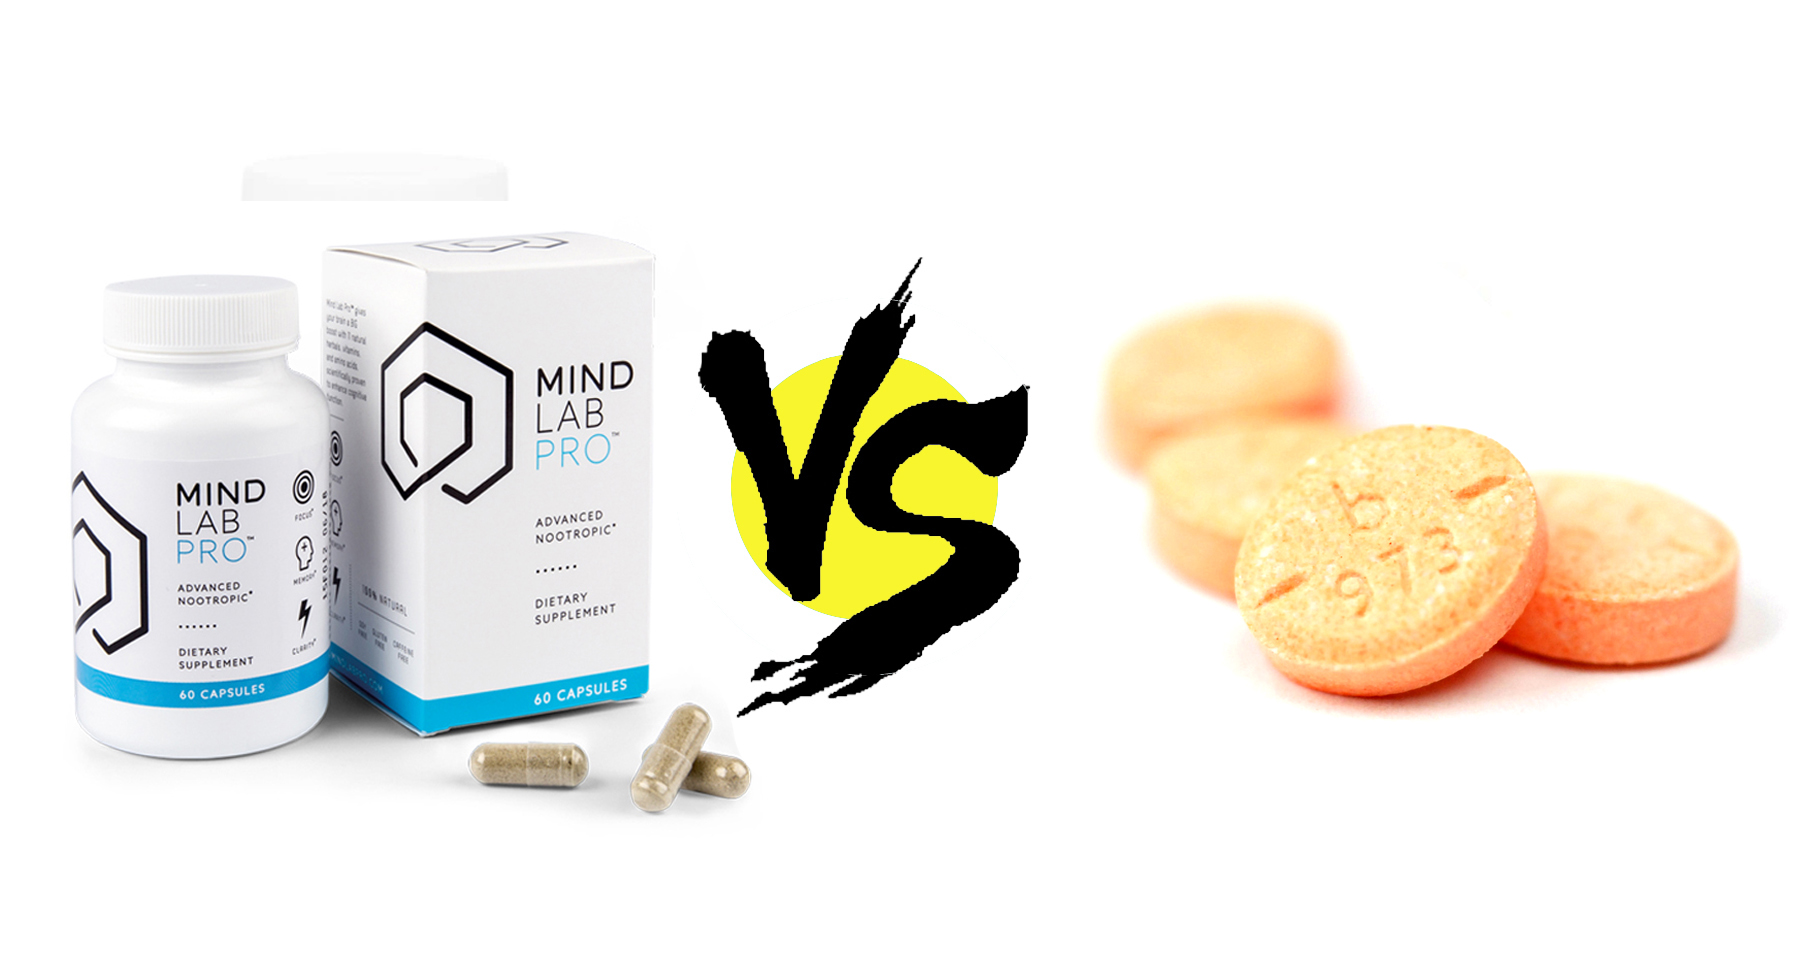 Mind Lab Pro Vs Adderall Nootropic Geek